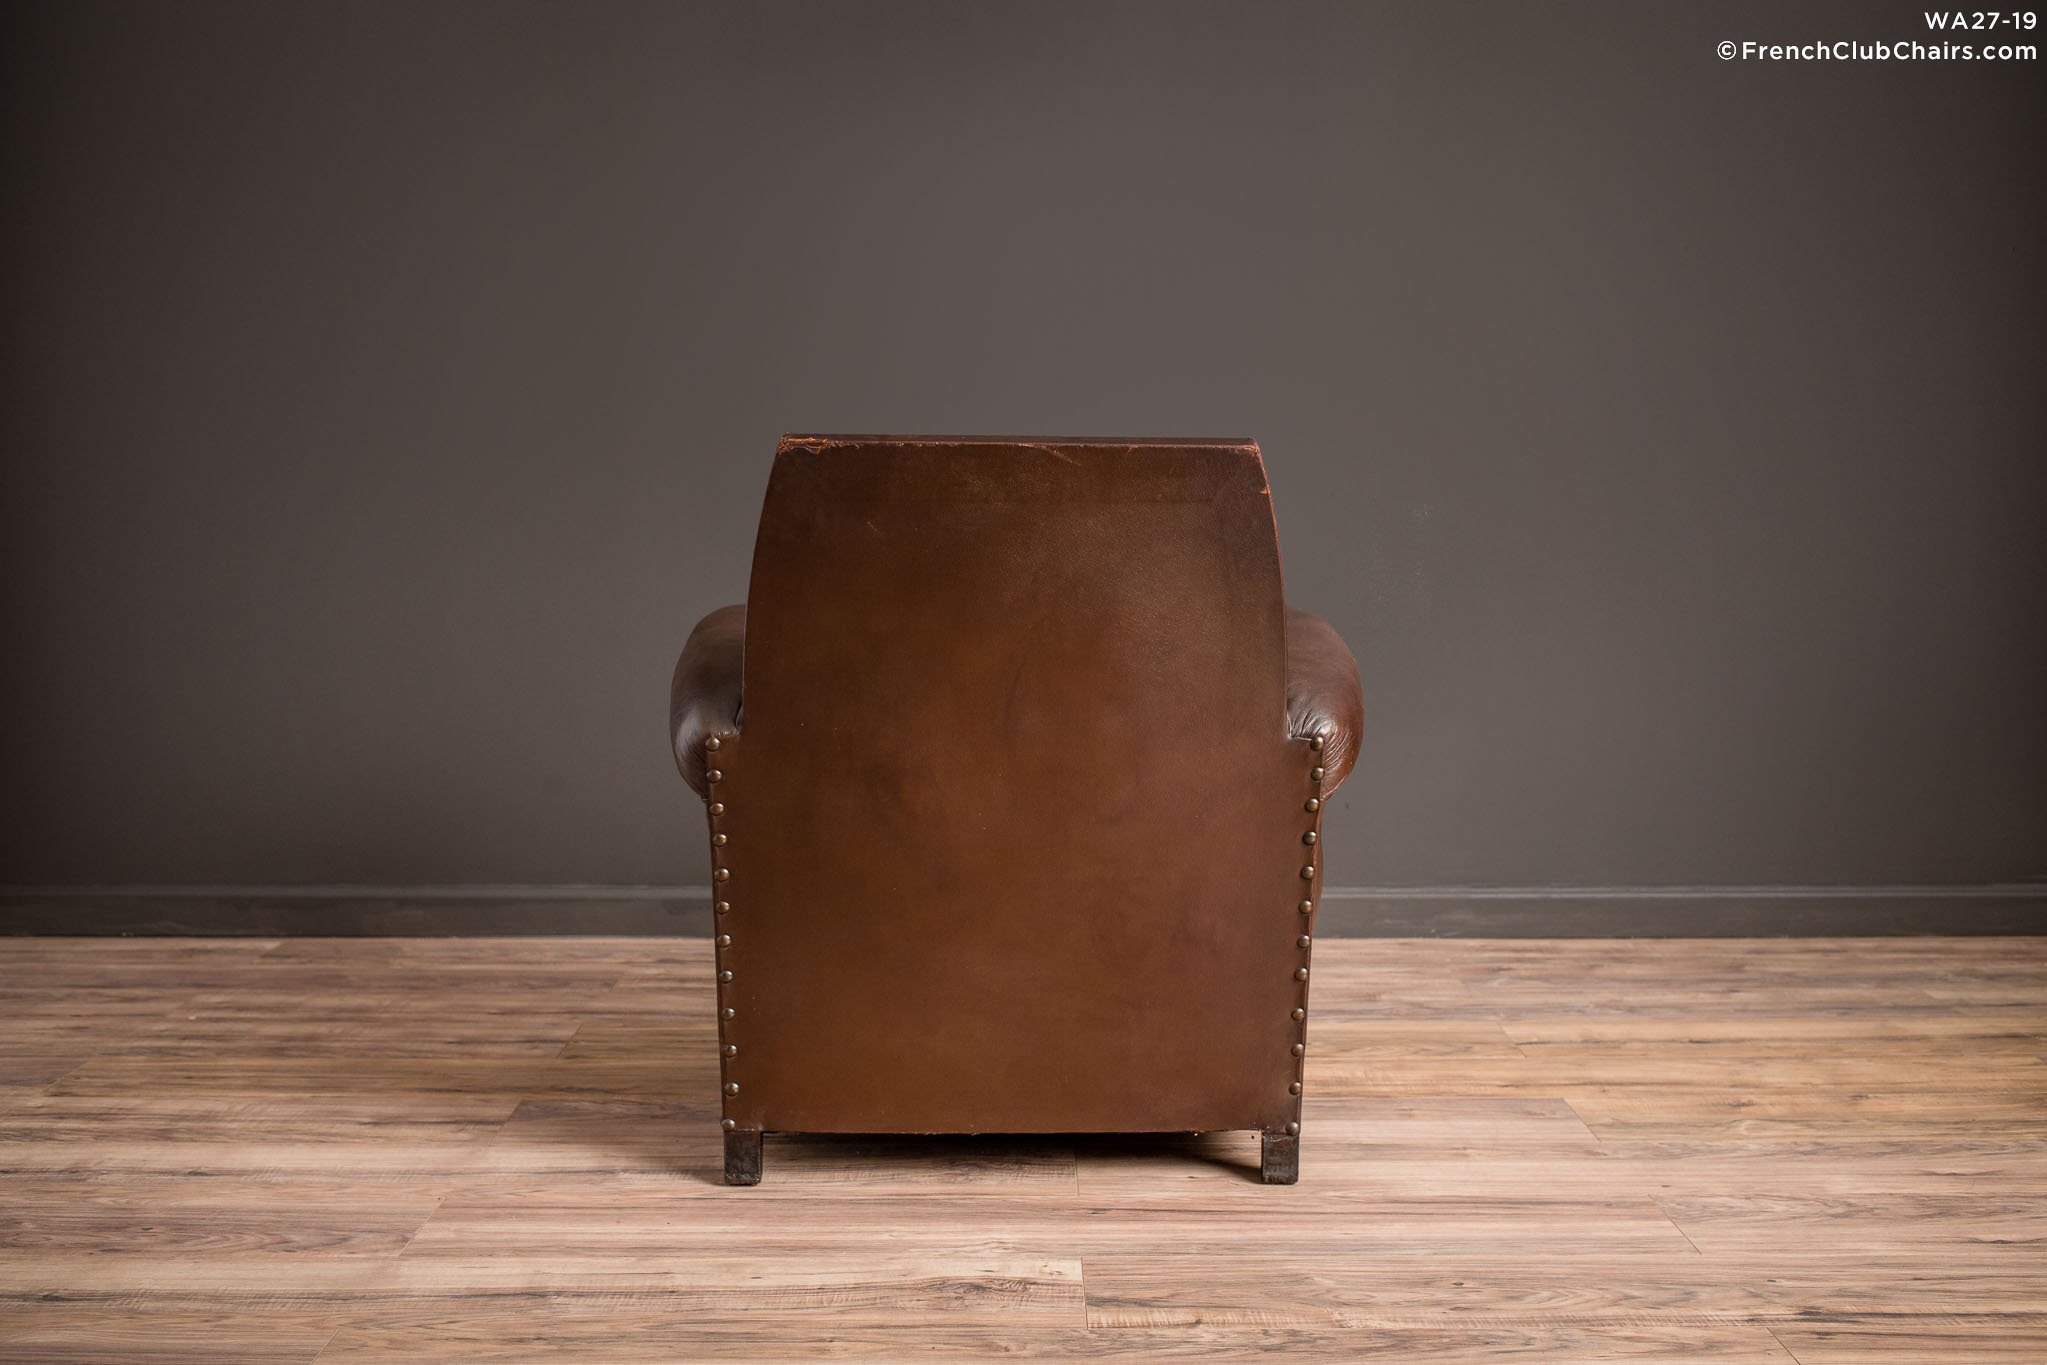 WA_27-19_The_Director_Nailed_High_Back_Solo_R_2BK-v01-williams-antiks-leather-french-club-chair-wa_fcccom